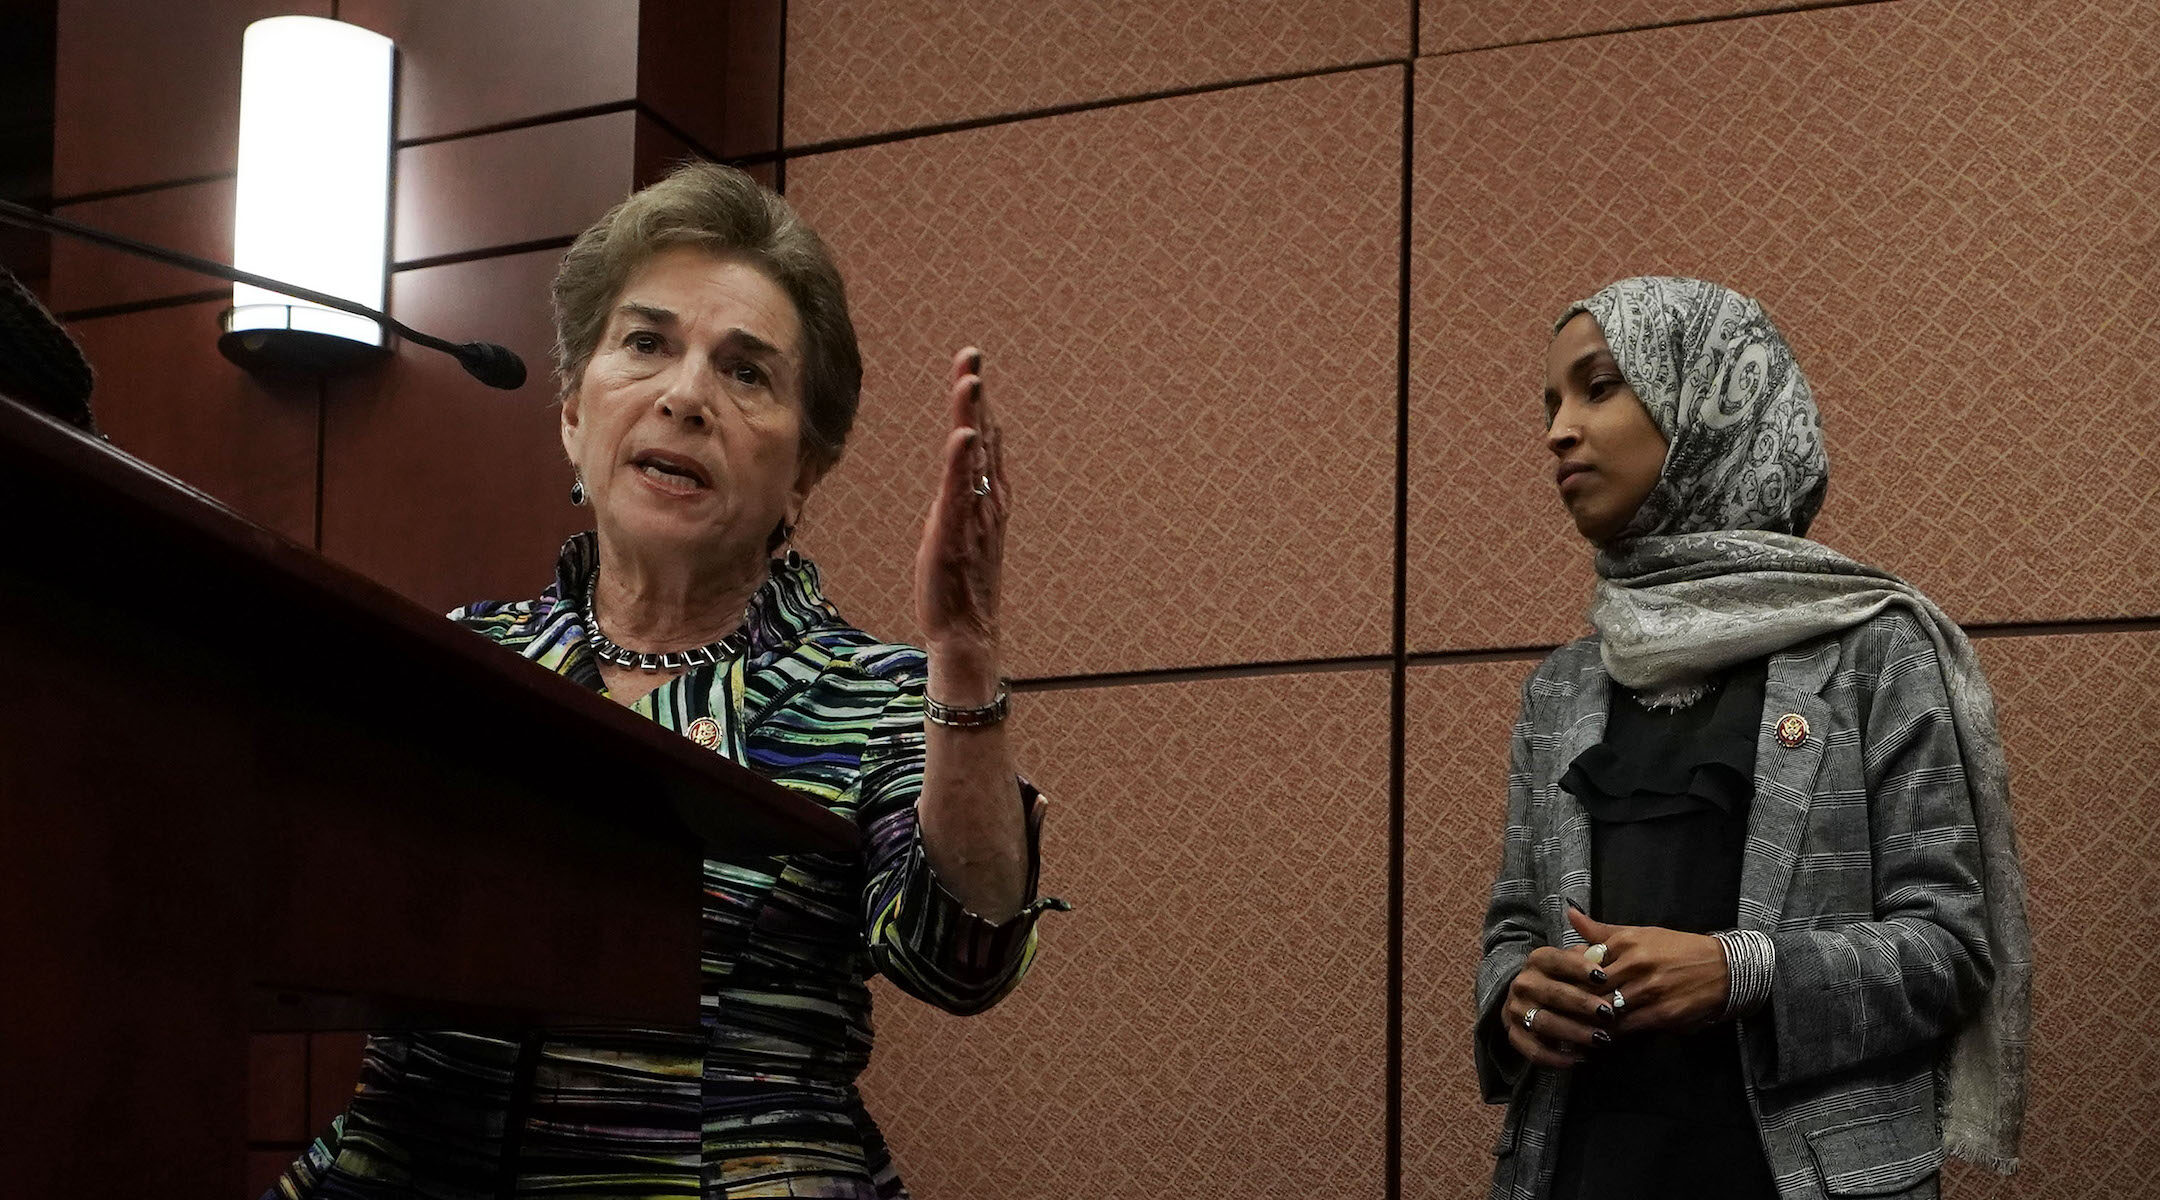 Reps. Jan Schakowsky (left) and Ilhan Omar at a news conference on Capitol Hill, Jan. 24, 2019. (Photo/JTA-Alex Wong-Getty Images)